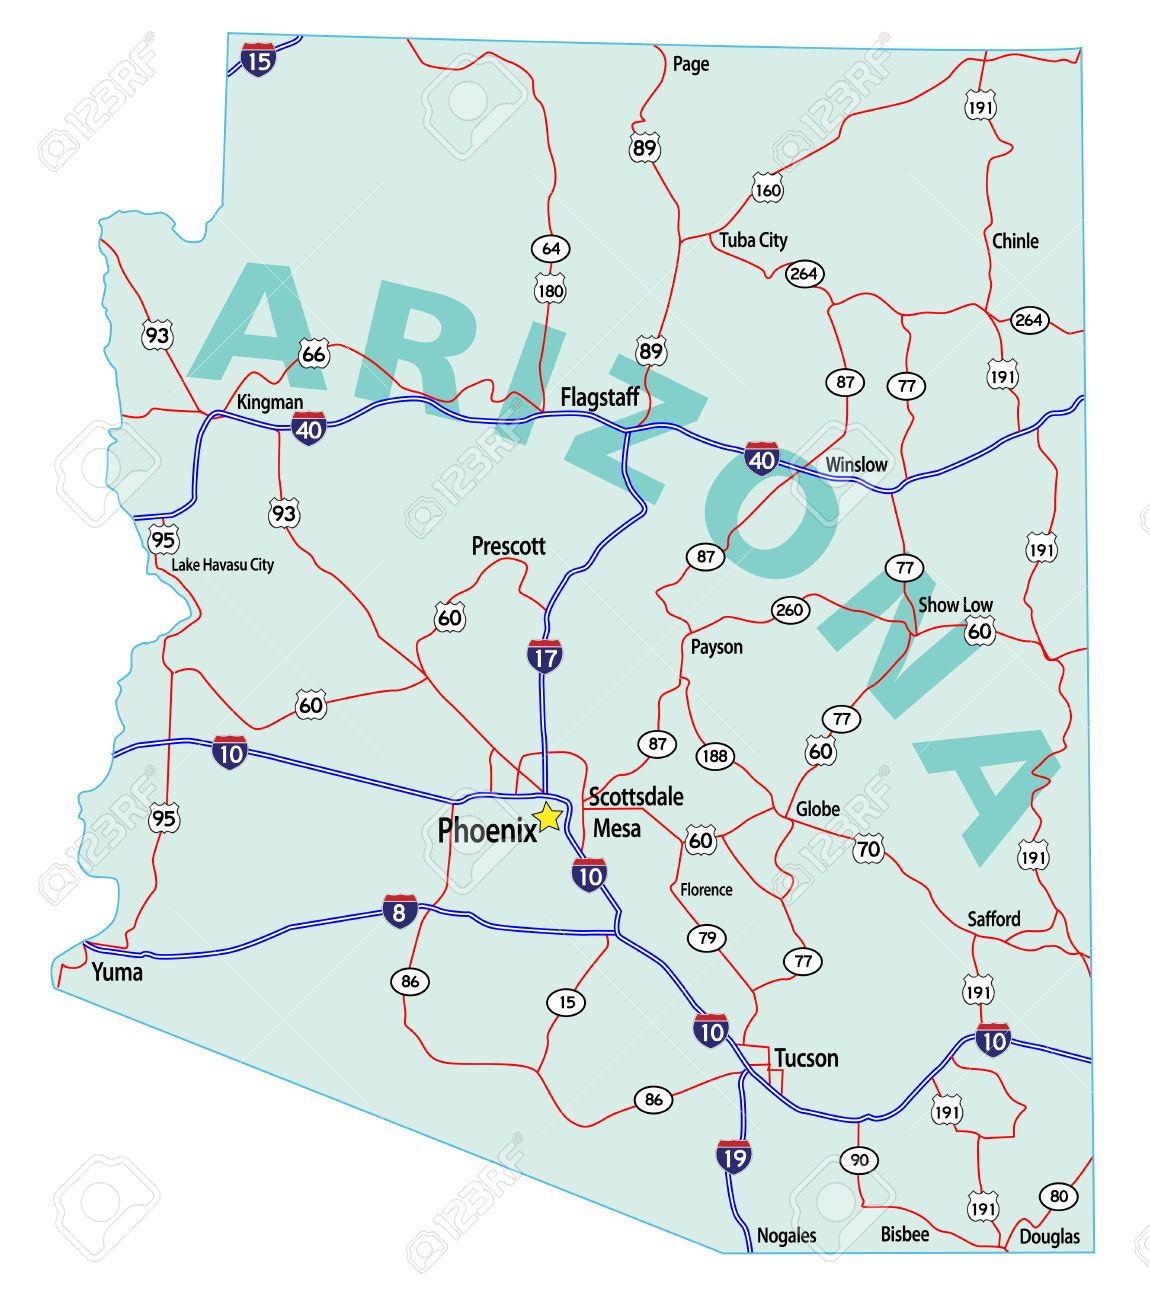 Arizona State Road Map With Interstates US Highways And State - Road map of arizona